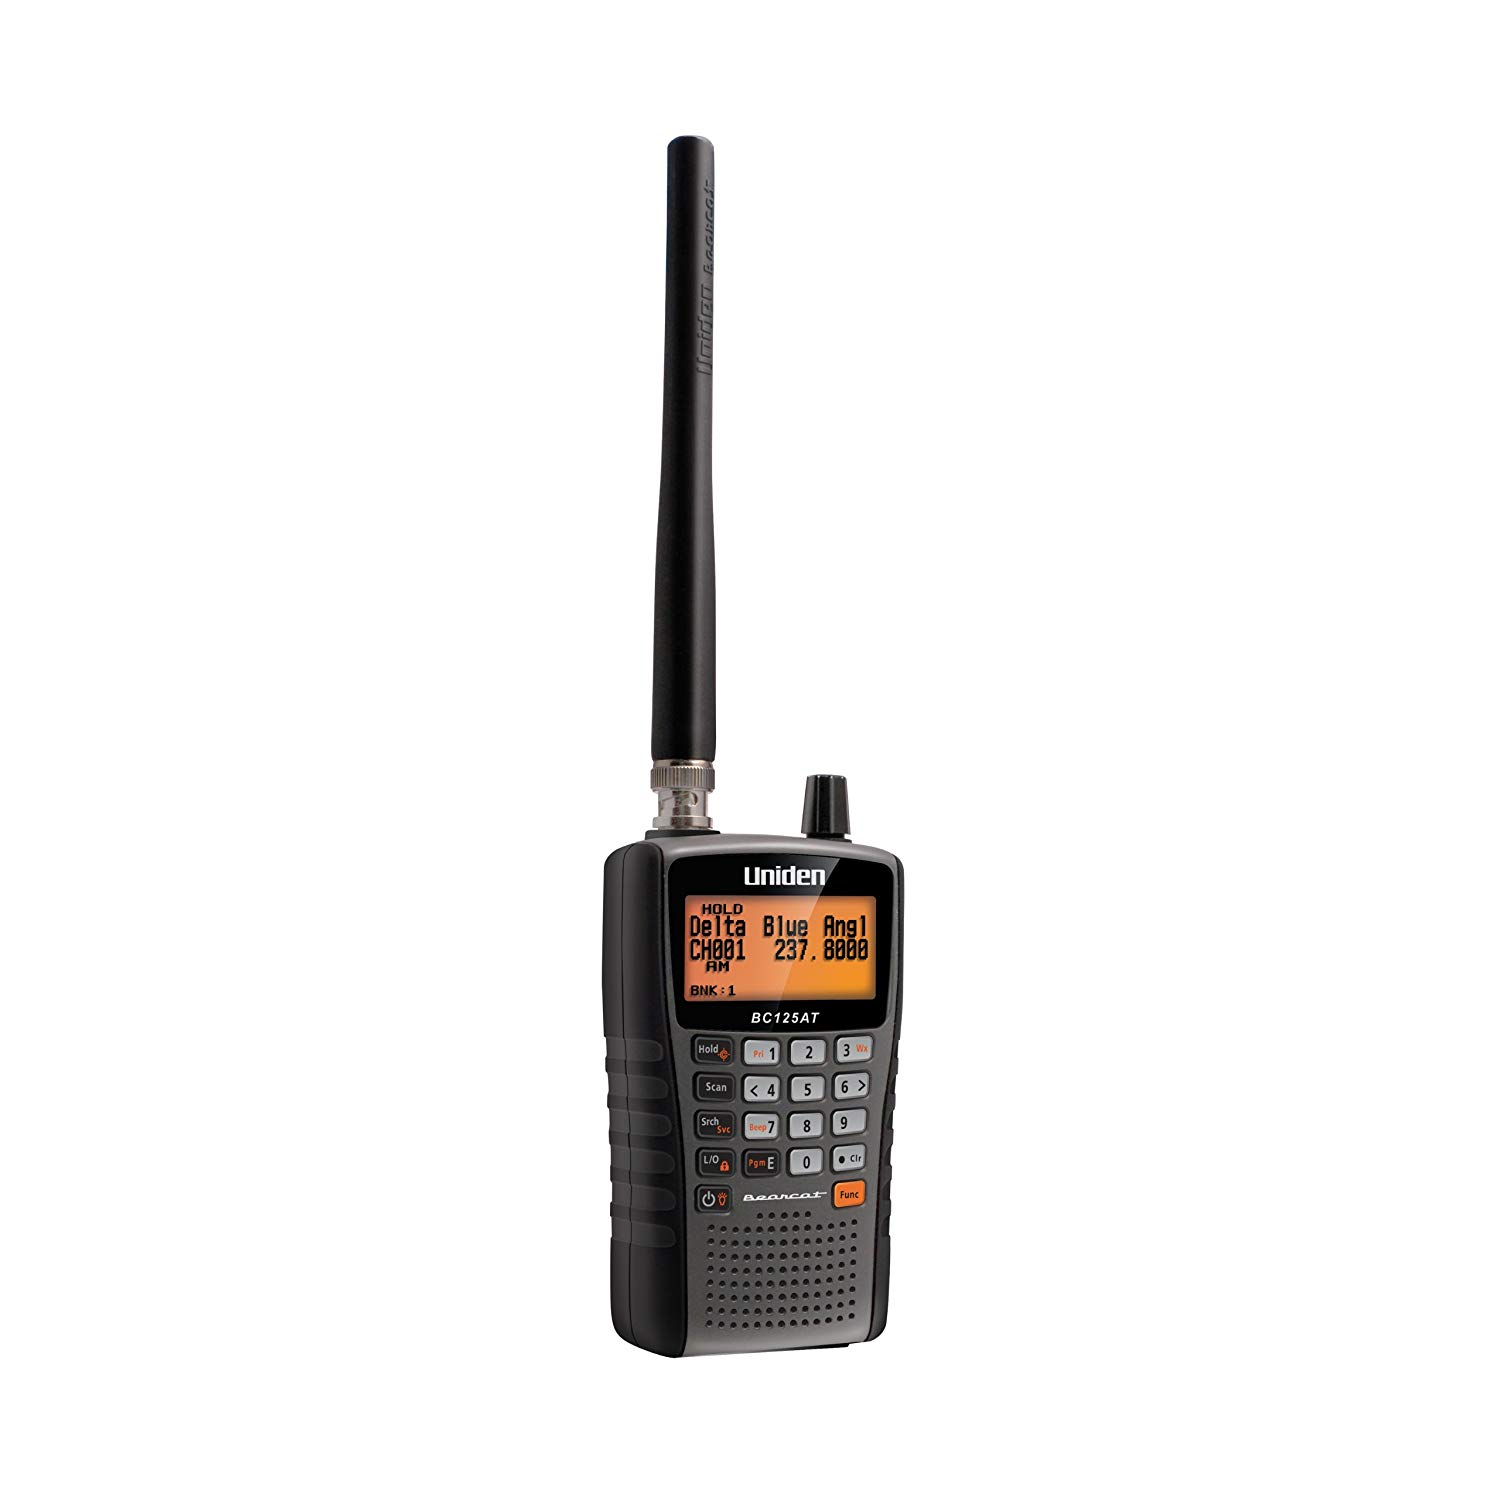 Uniden Bearcat BC125AT Handheld Scanner, 500 Alpha-Tagged channels, Public Safety, Police, Fire, Emergency, Marine, Military Aircraft, and Auto Racing Scanner